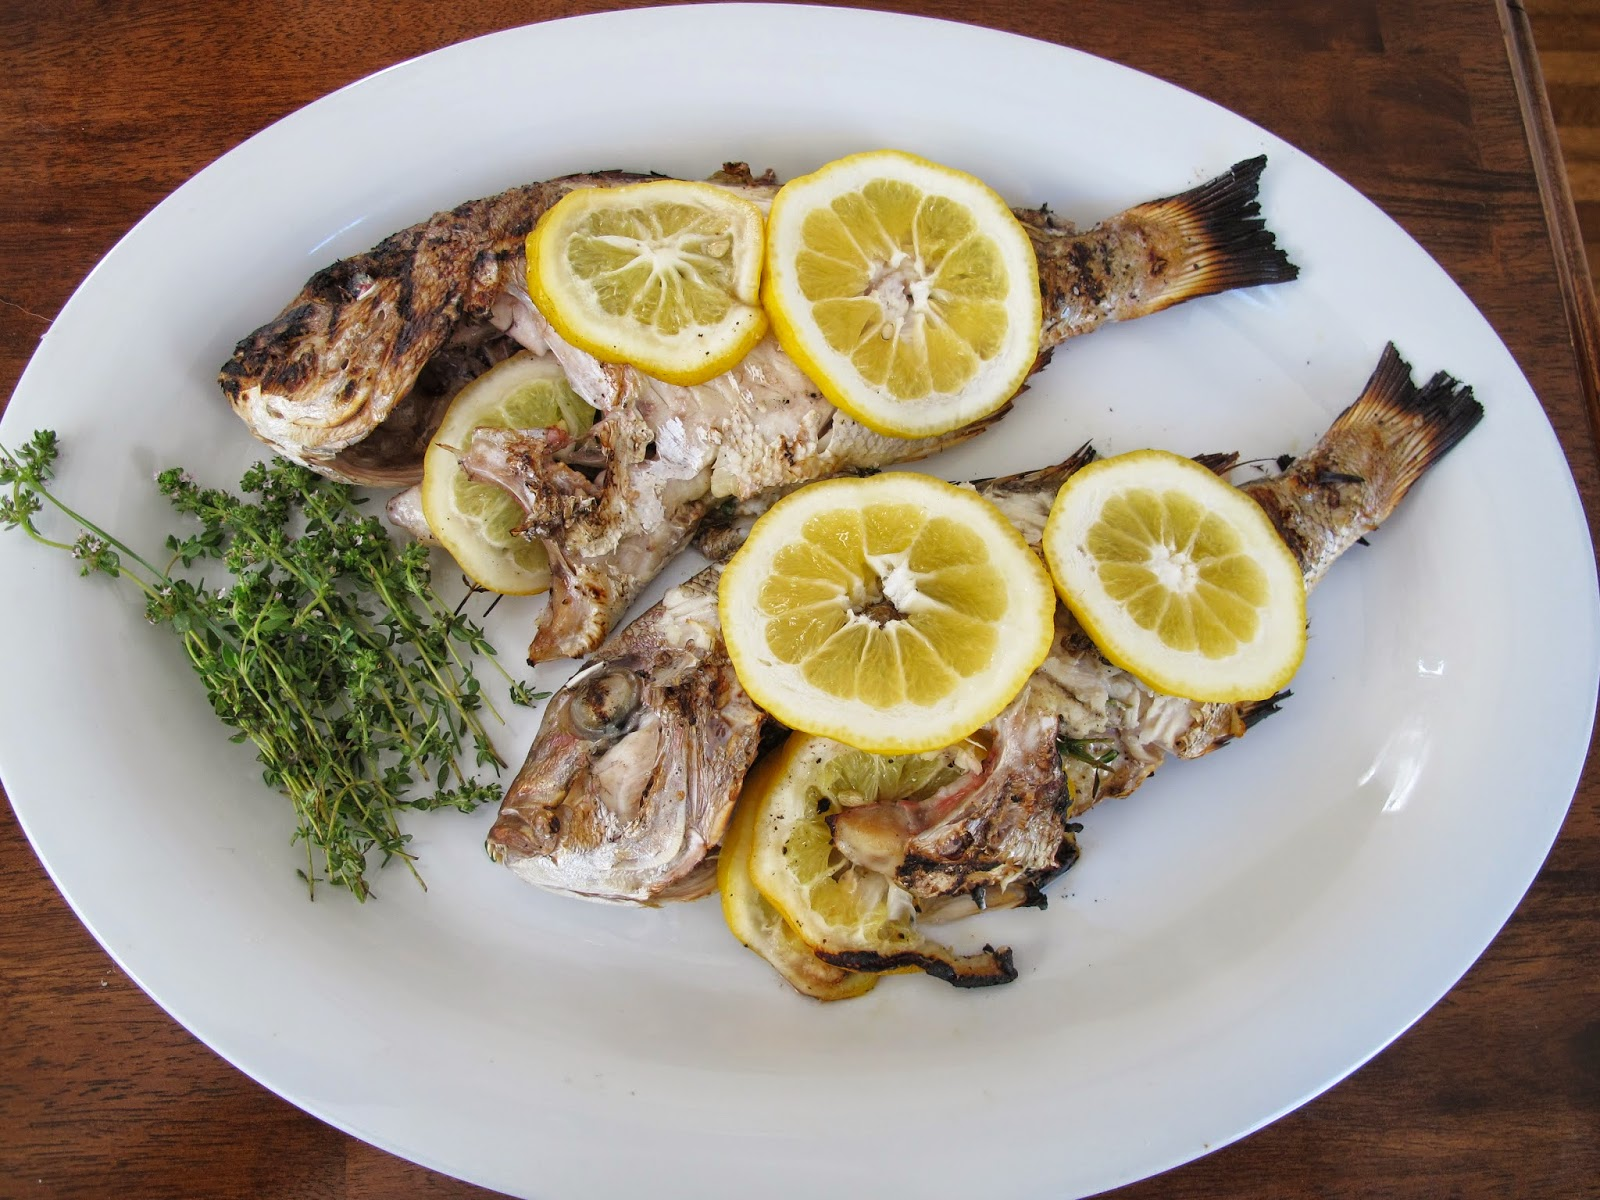 Whole Grilled Snapper with Lemon Garlic Sauce